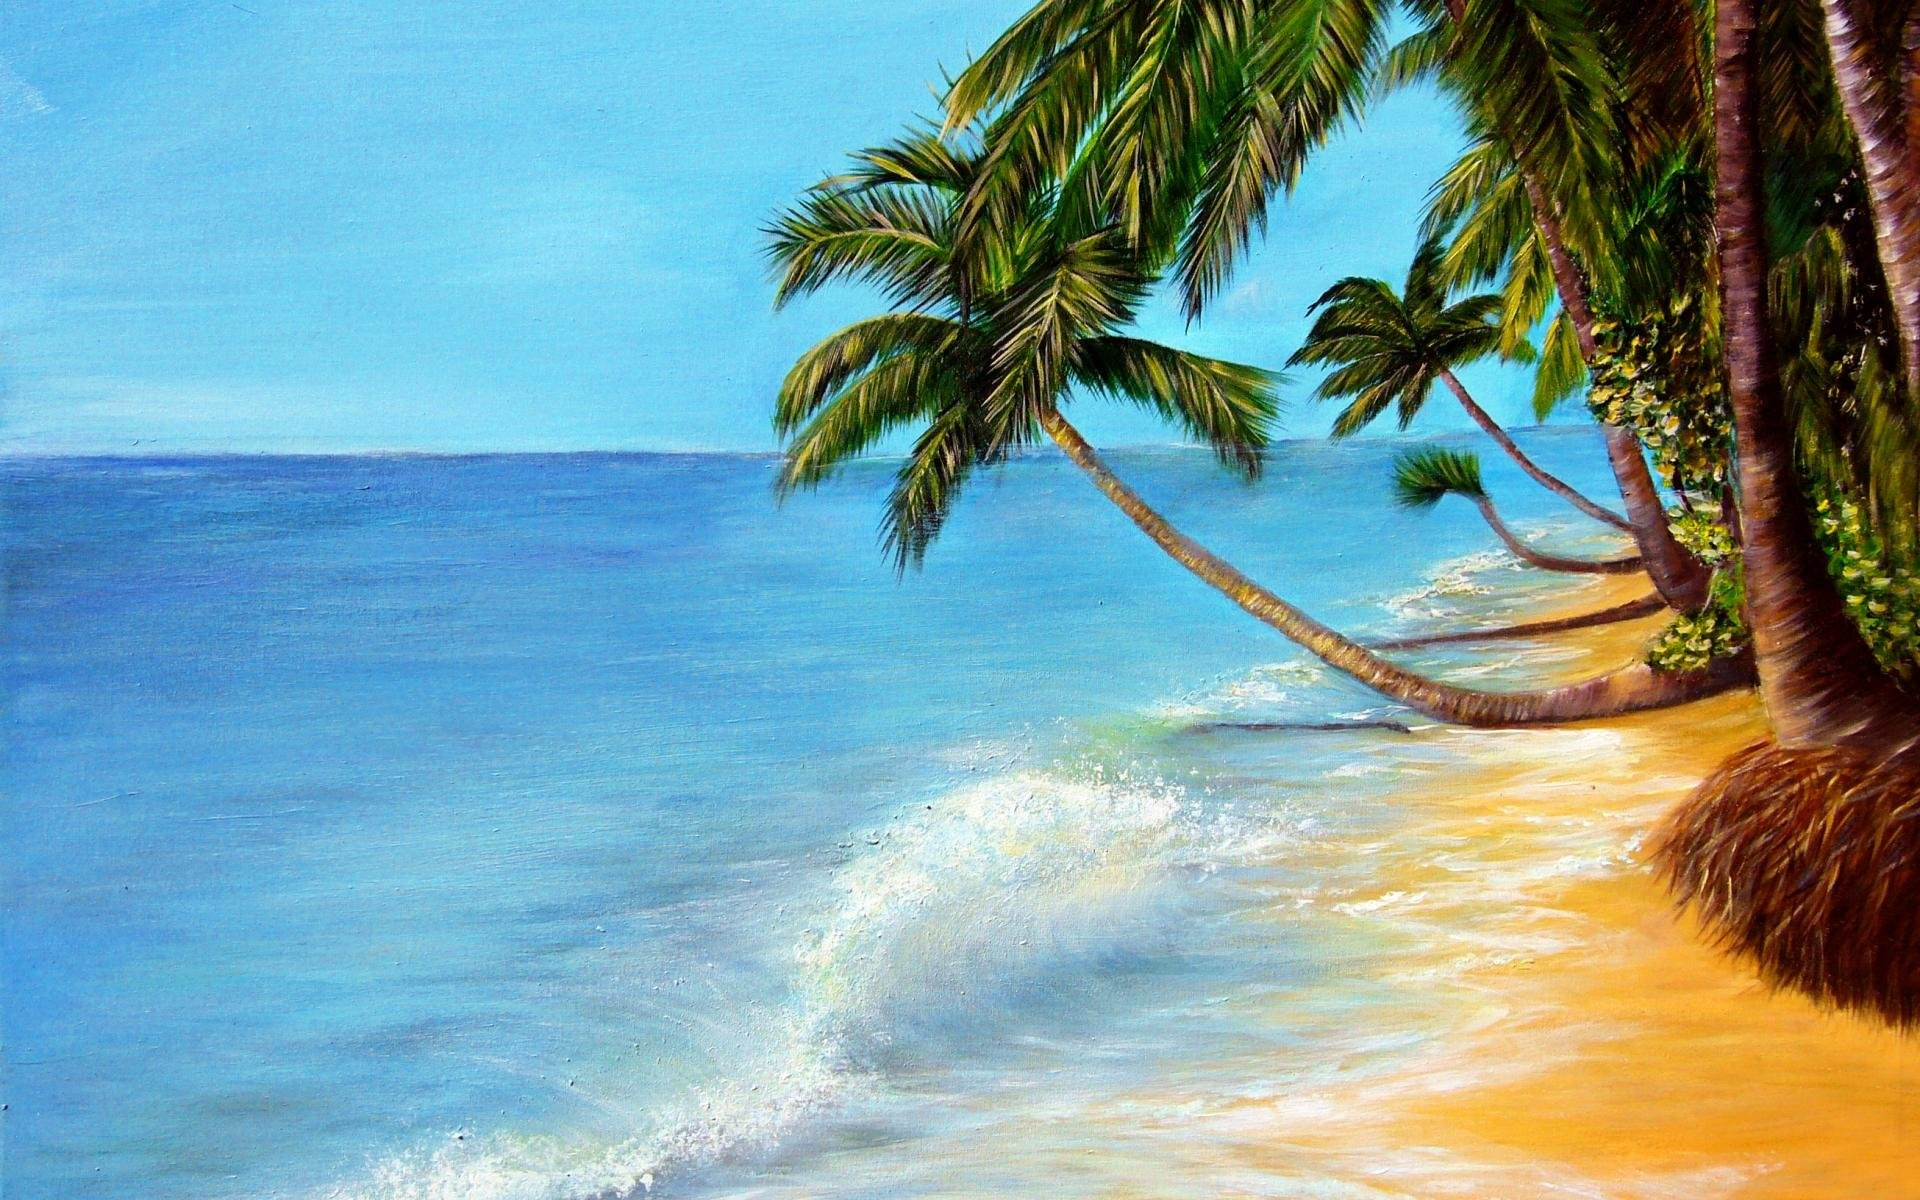 Tropical Beach Paradise Backgrounds: Beach Paradise Wallpaper ·①